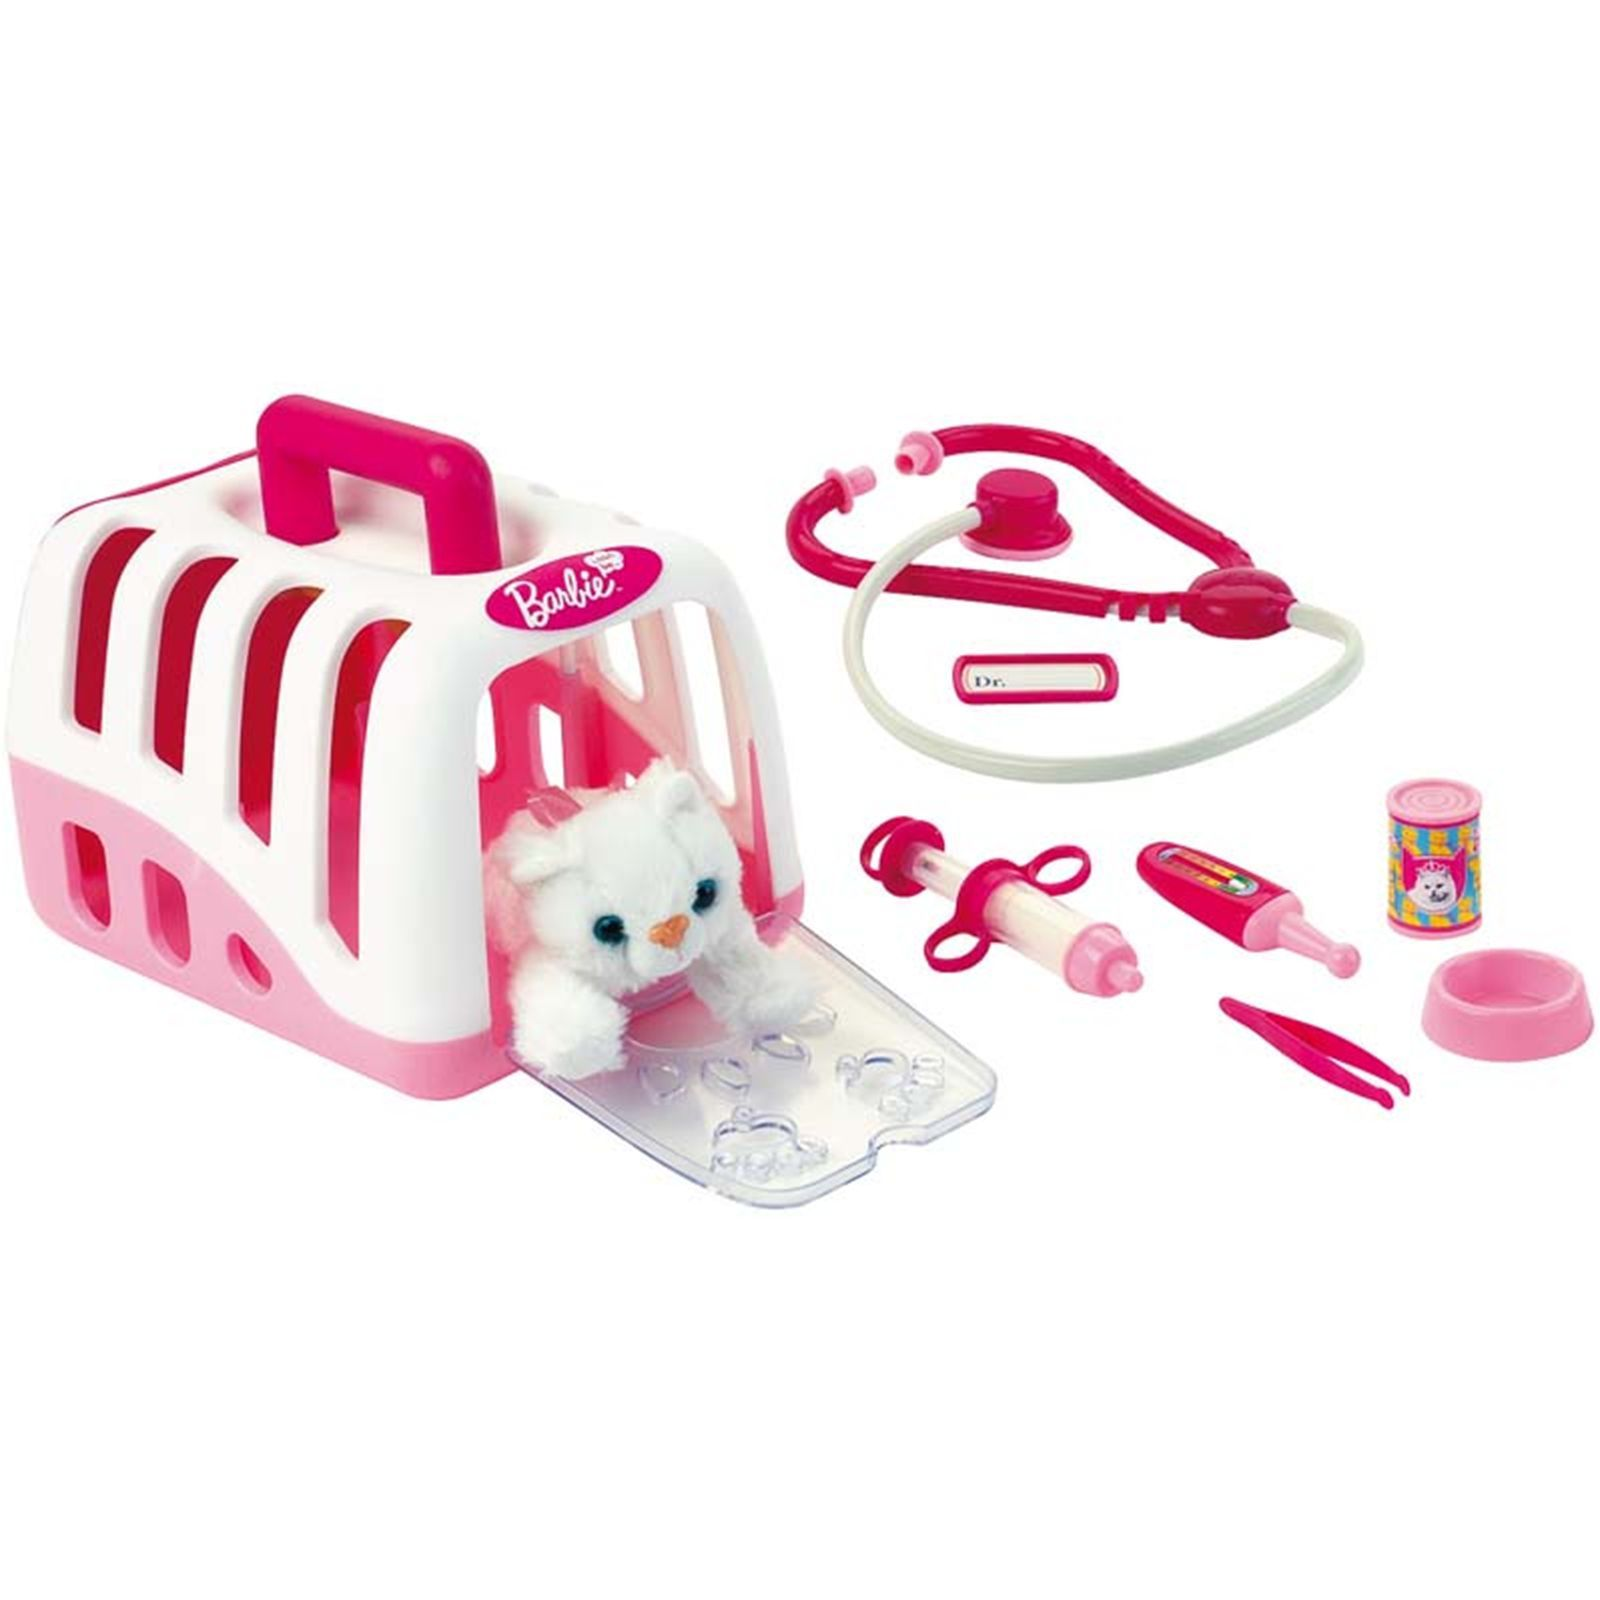 Klein jouets barbie malette v t rinaire multicolore - Barbie veterinaire ...